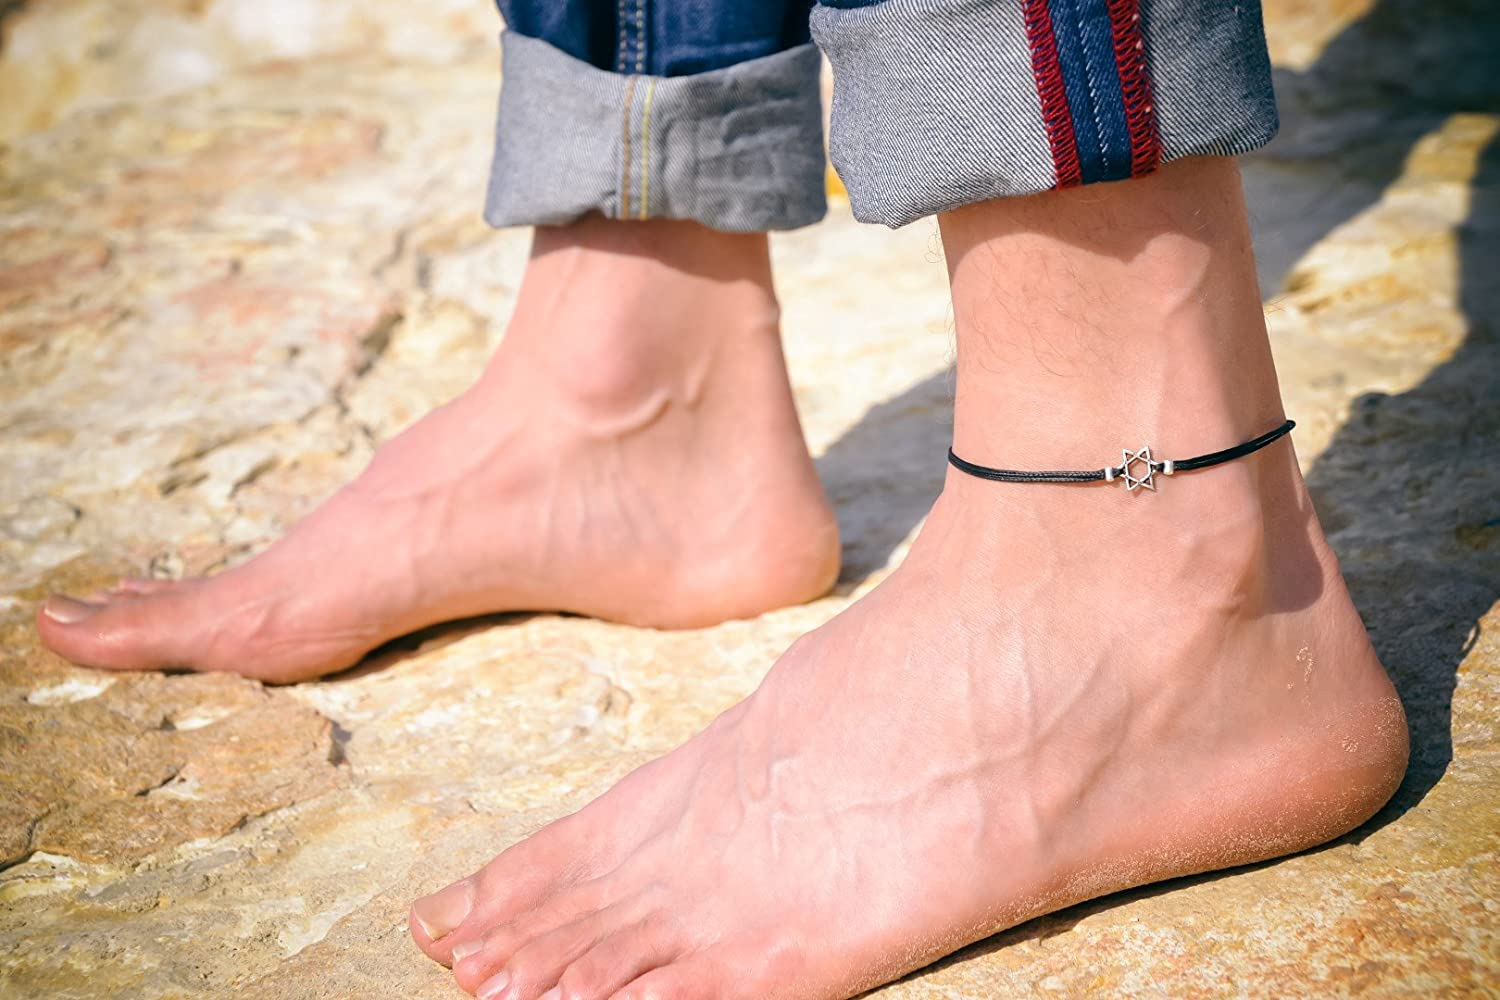 Anklet for men, men's anklet with silver Star of David, black cord, anklet for men, gift for him, ankle bracelet, jewish jewelry form Israel